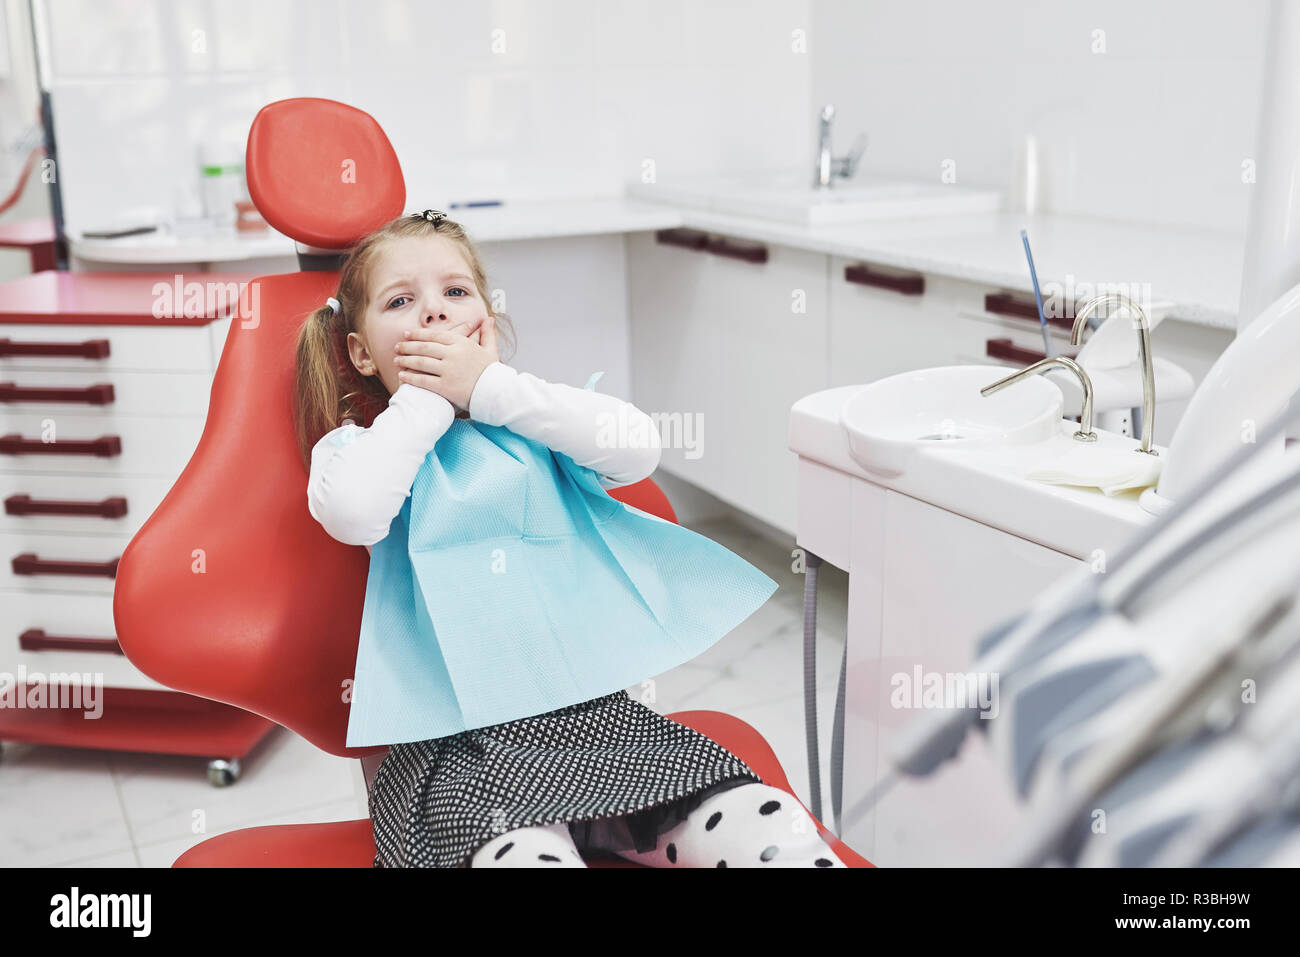 Frightened little girl at dentist office covered mouth with hands - Stock Image